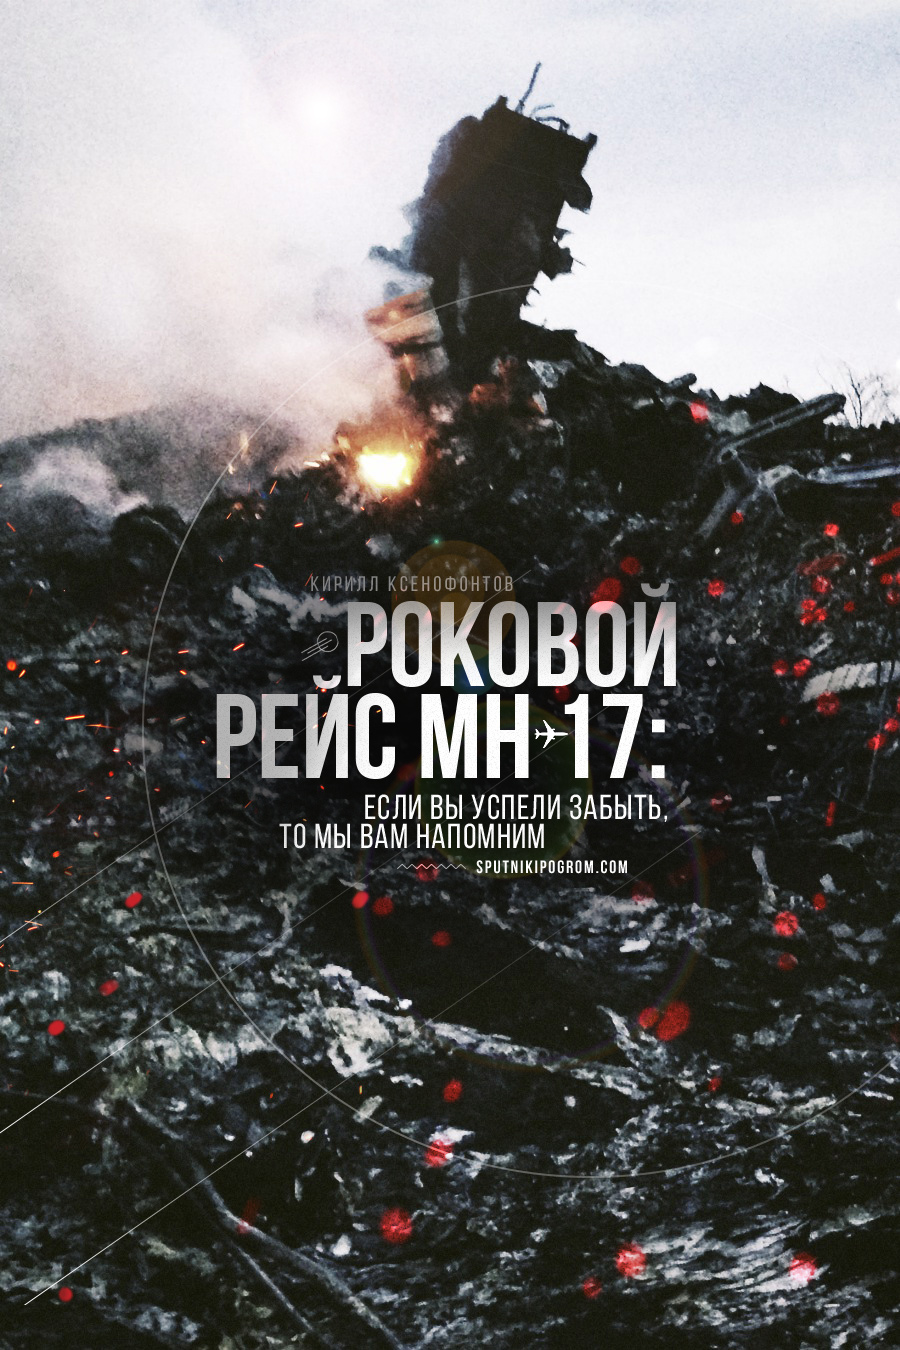 mh17-month